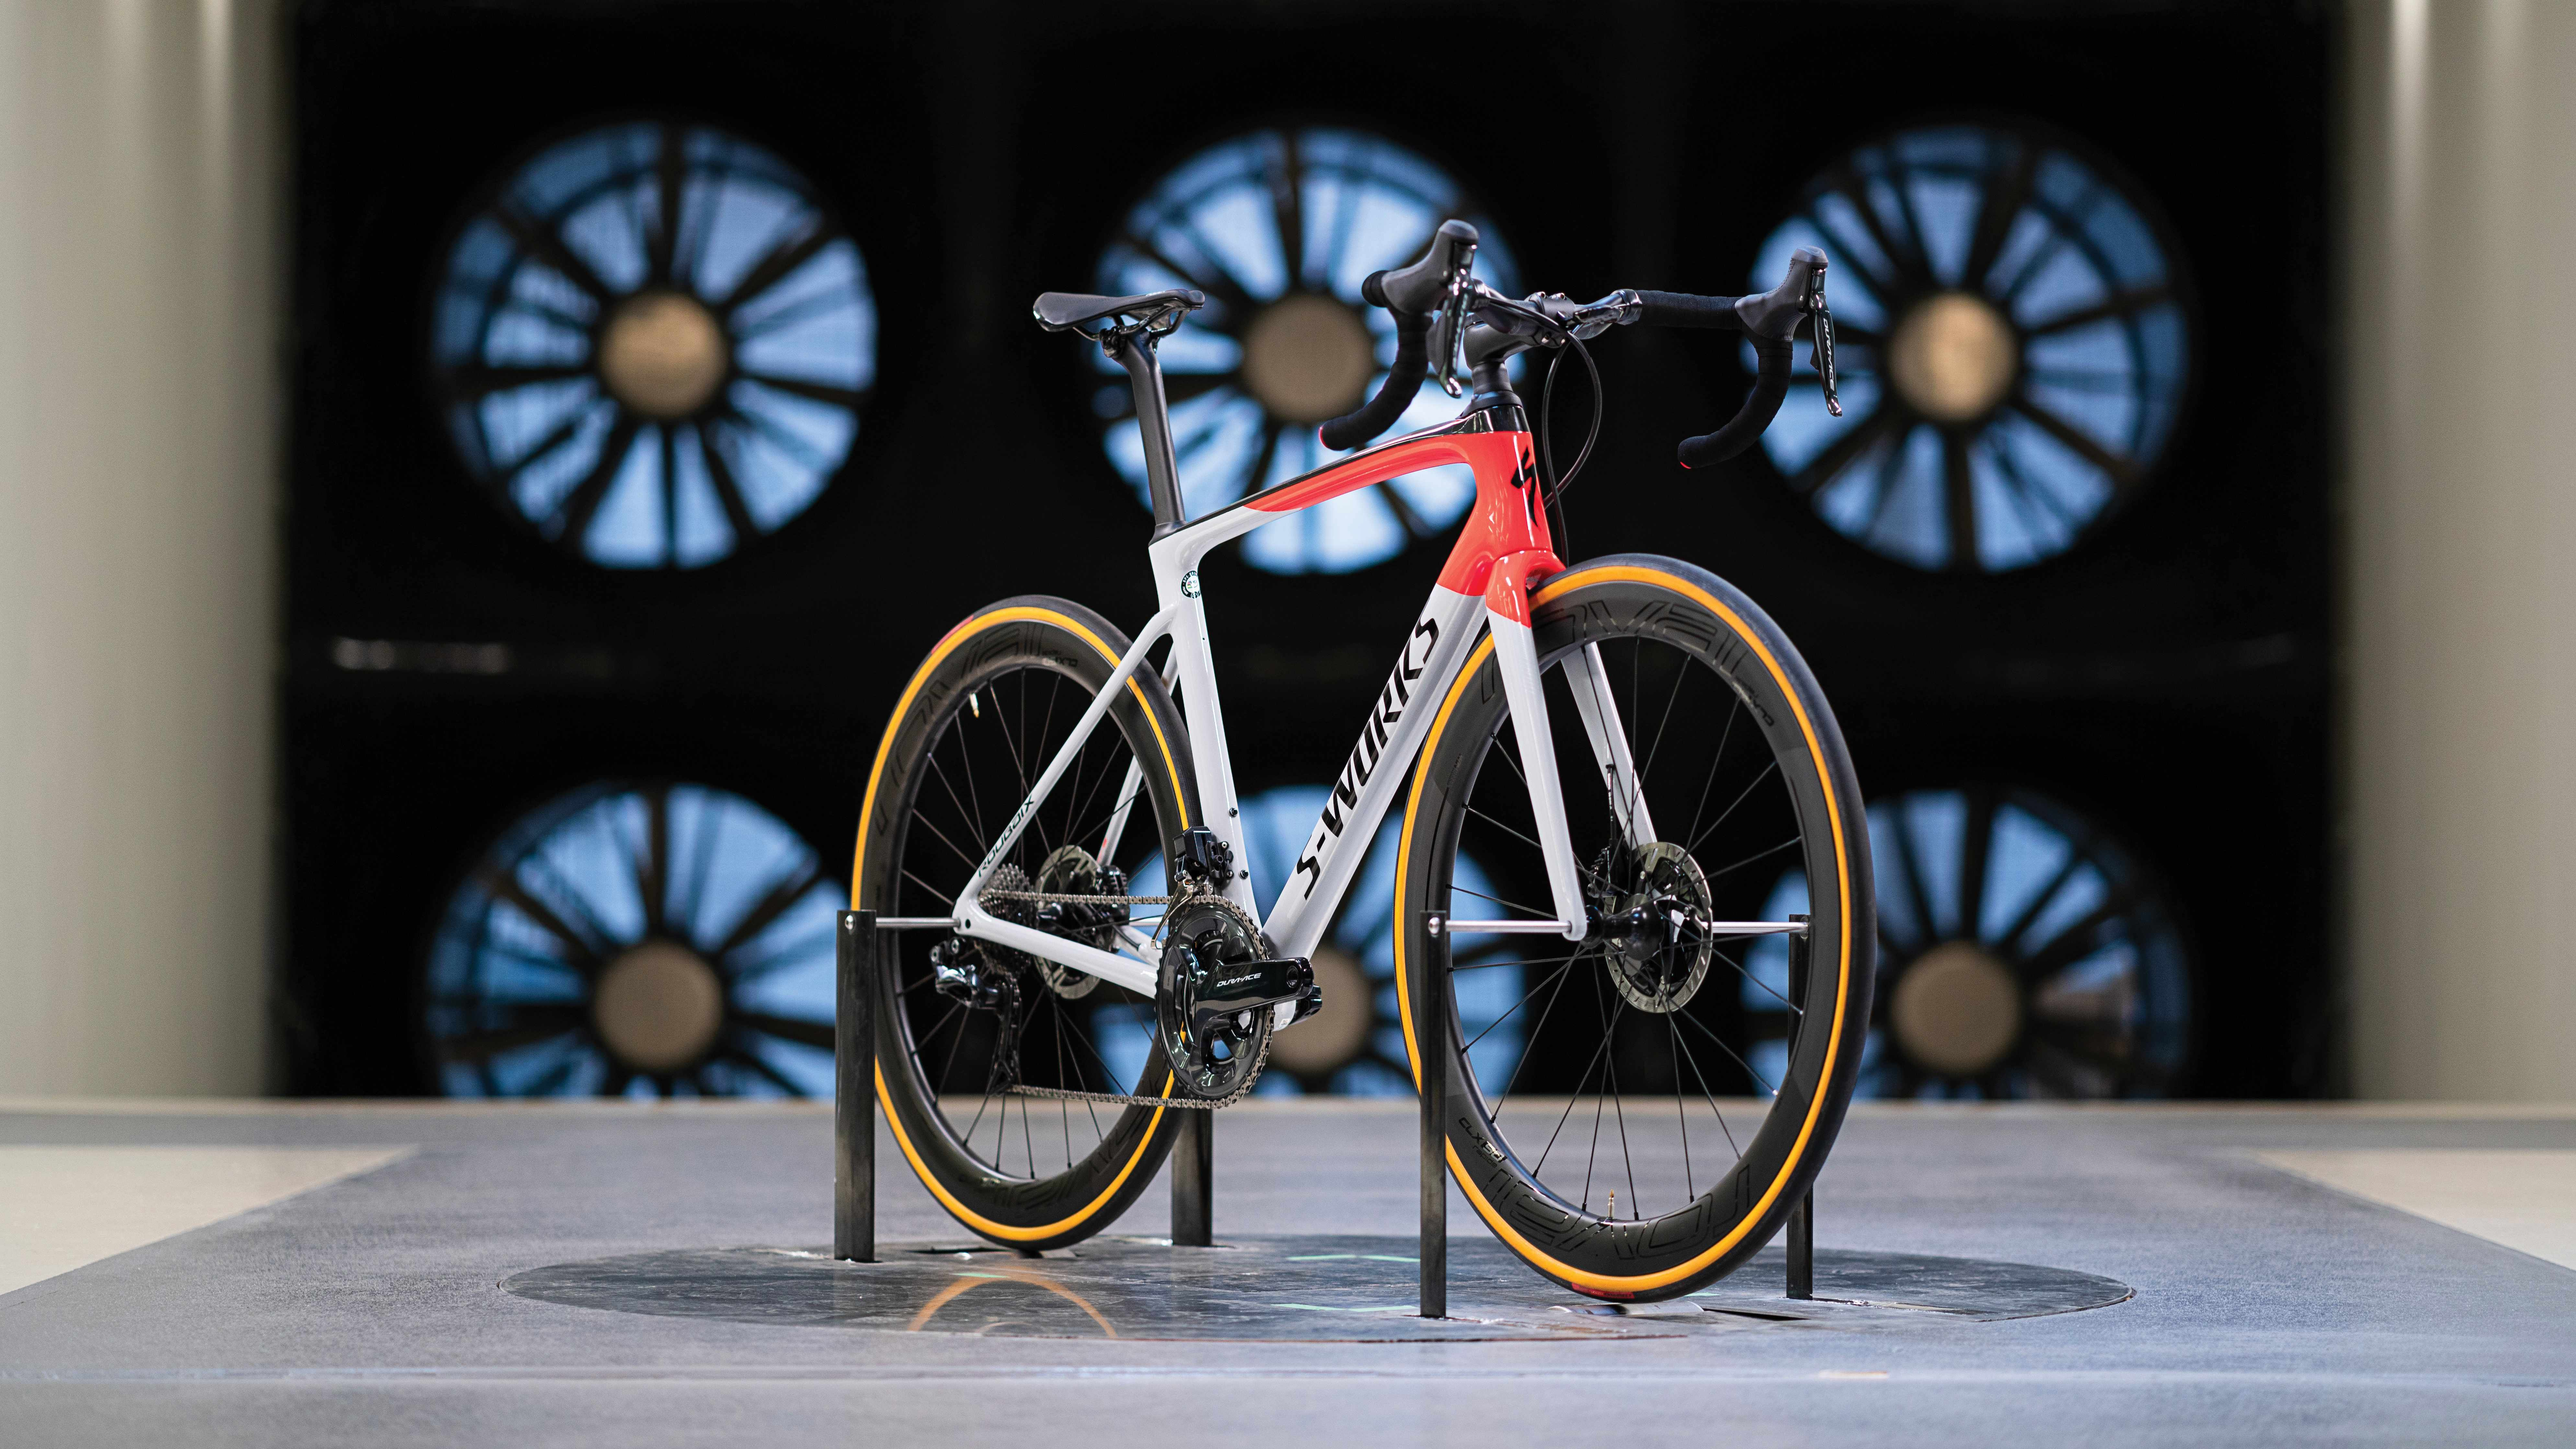 The 2019 Specialized Roubaix was tested in Specialized's own wind tunnel